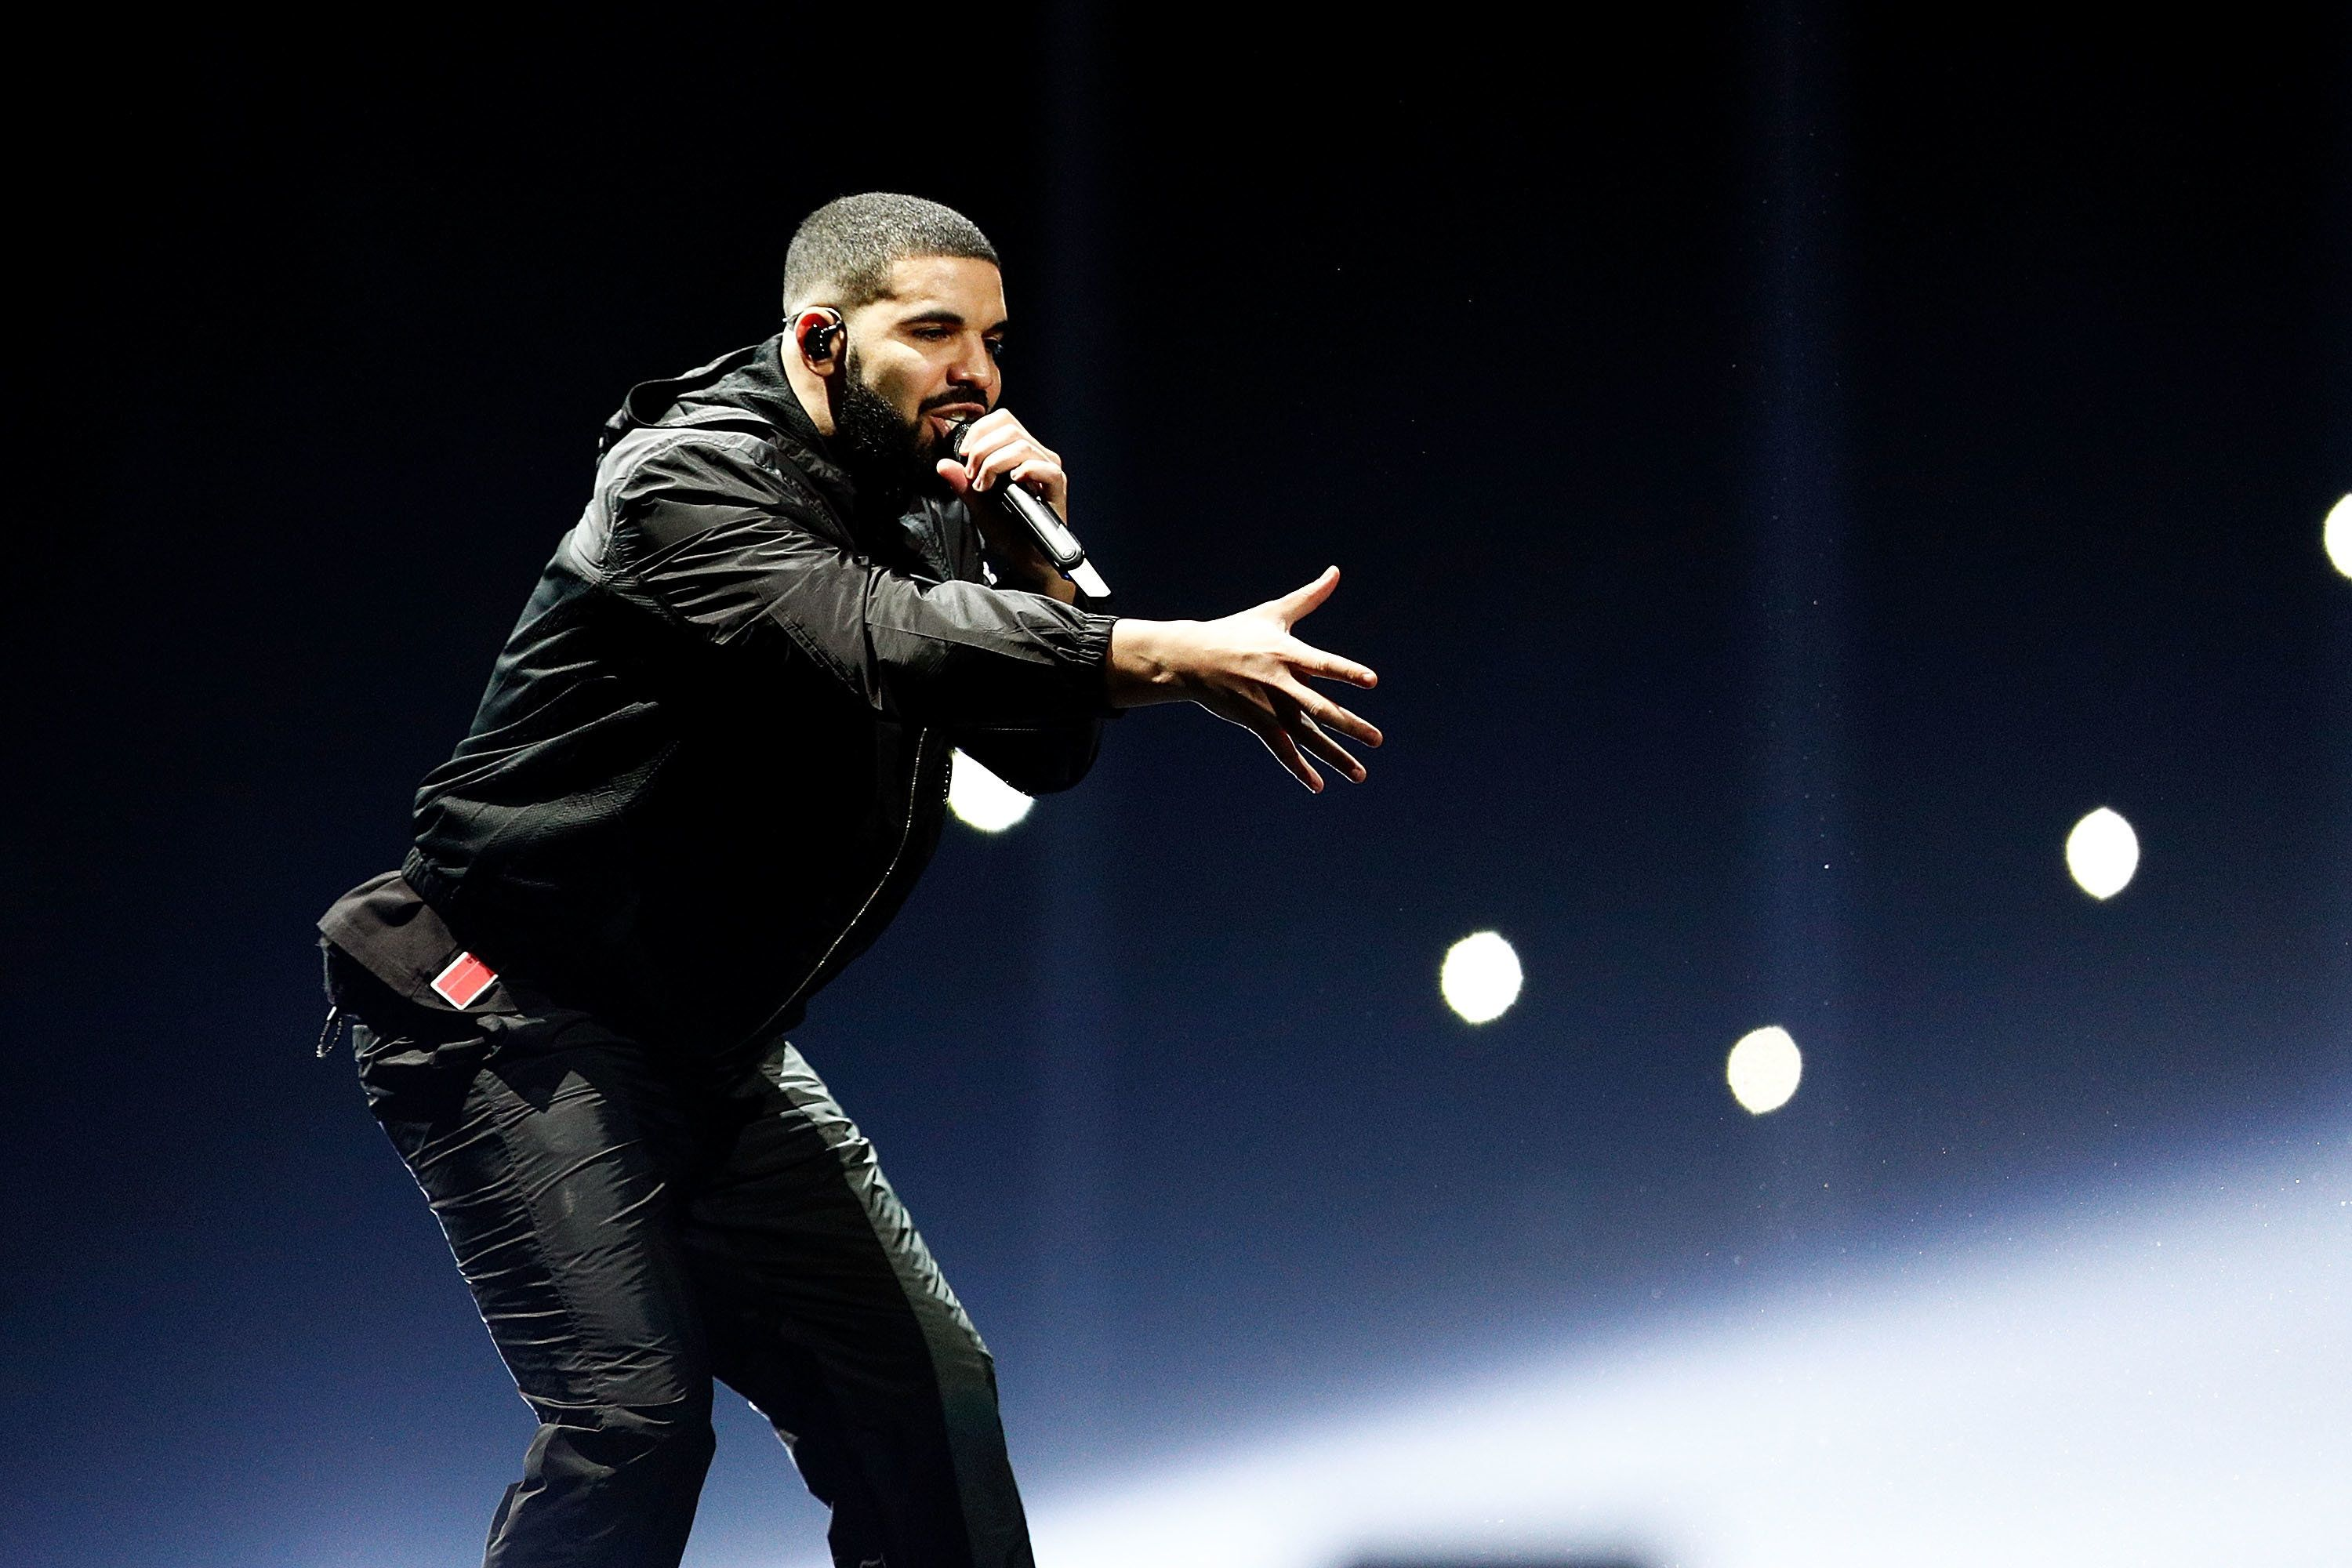 Drake Briefly Halts Live Show To Call Out One Fan For 'Touching Girls' In The